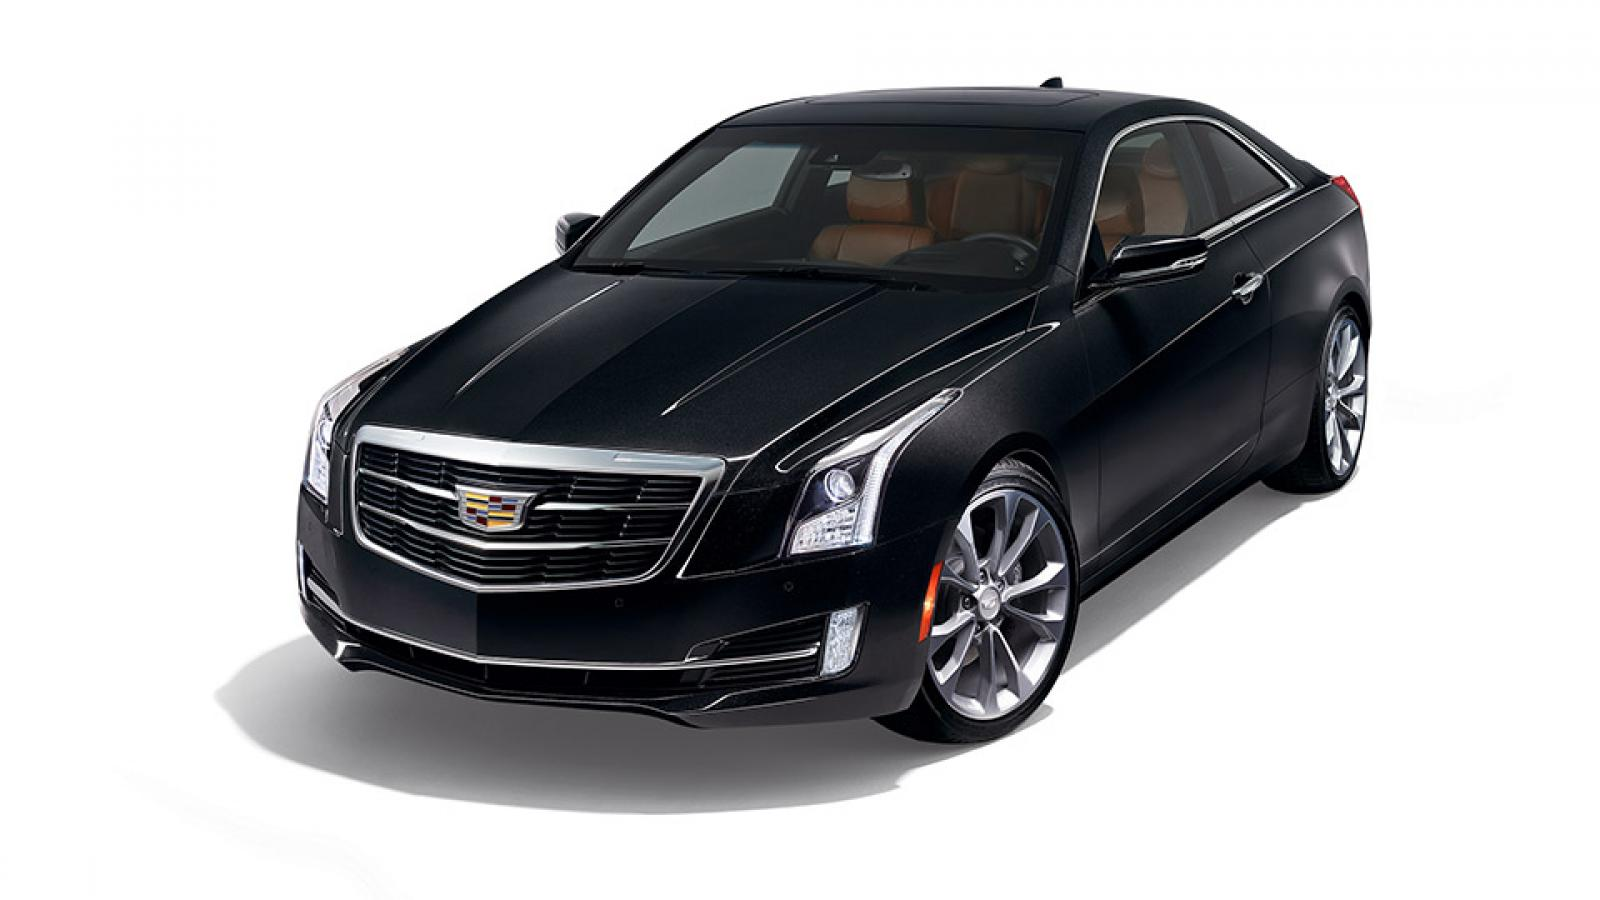 2015 cadillac ats. Black Bedroom Furniture Sets. Home Design Ideas